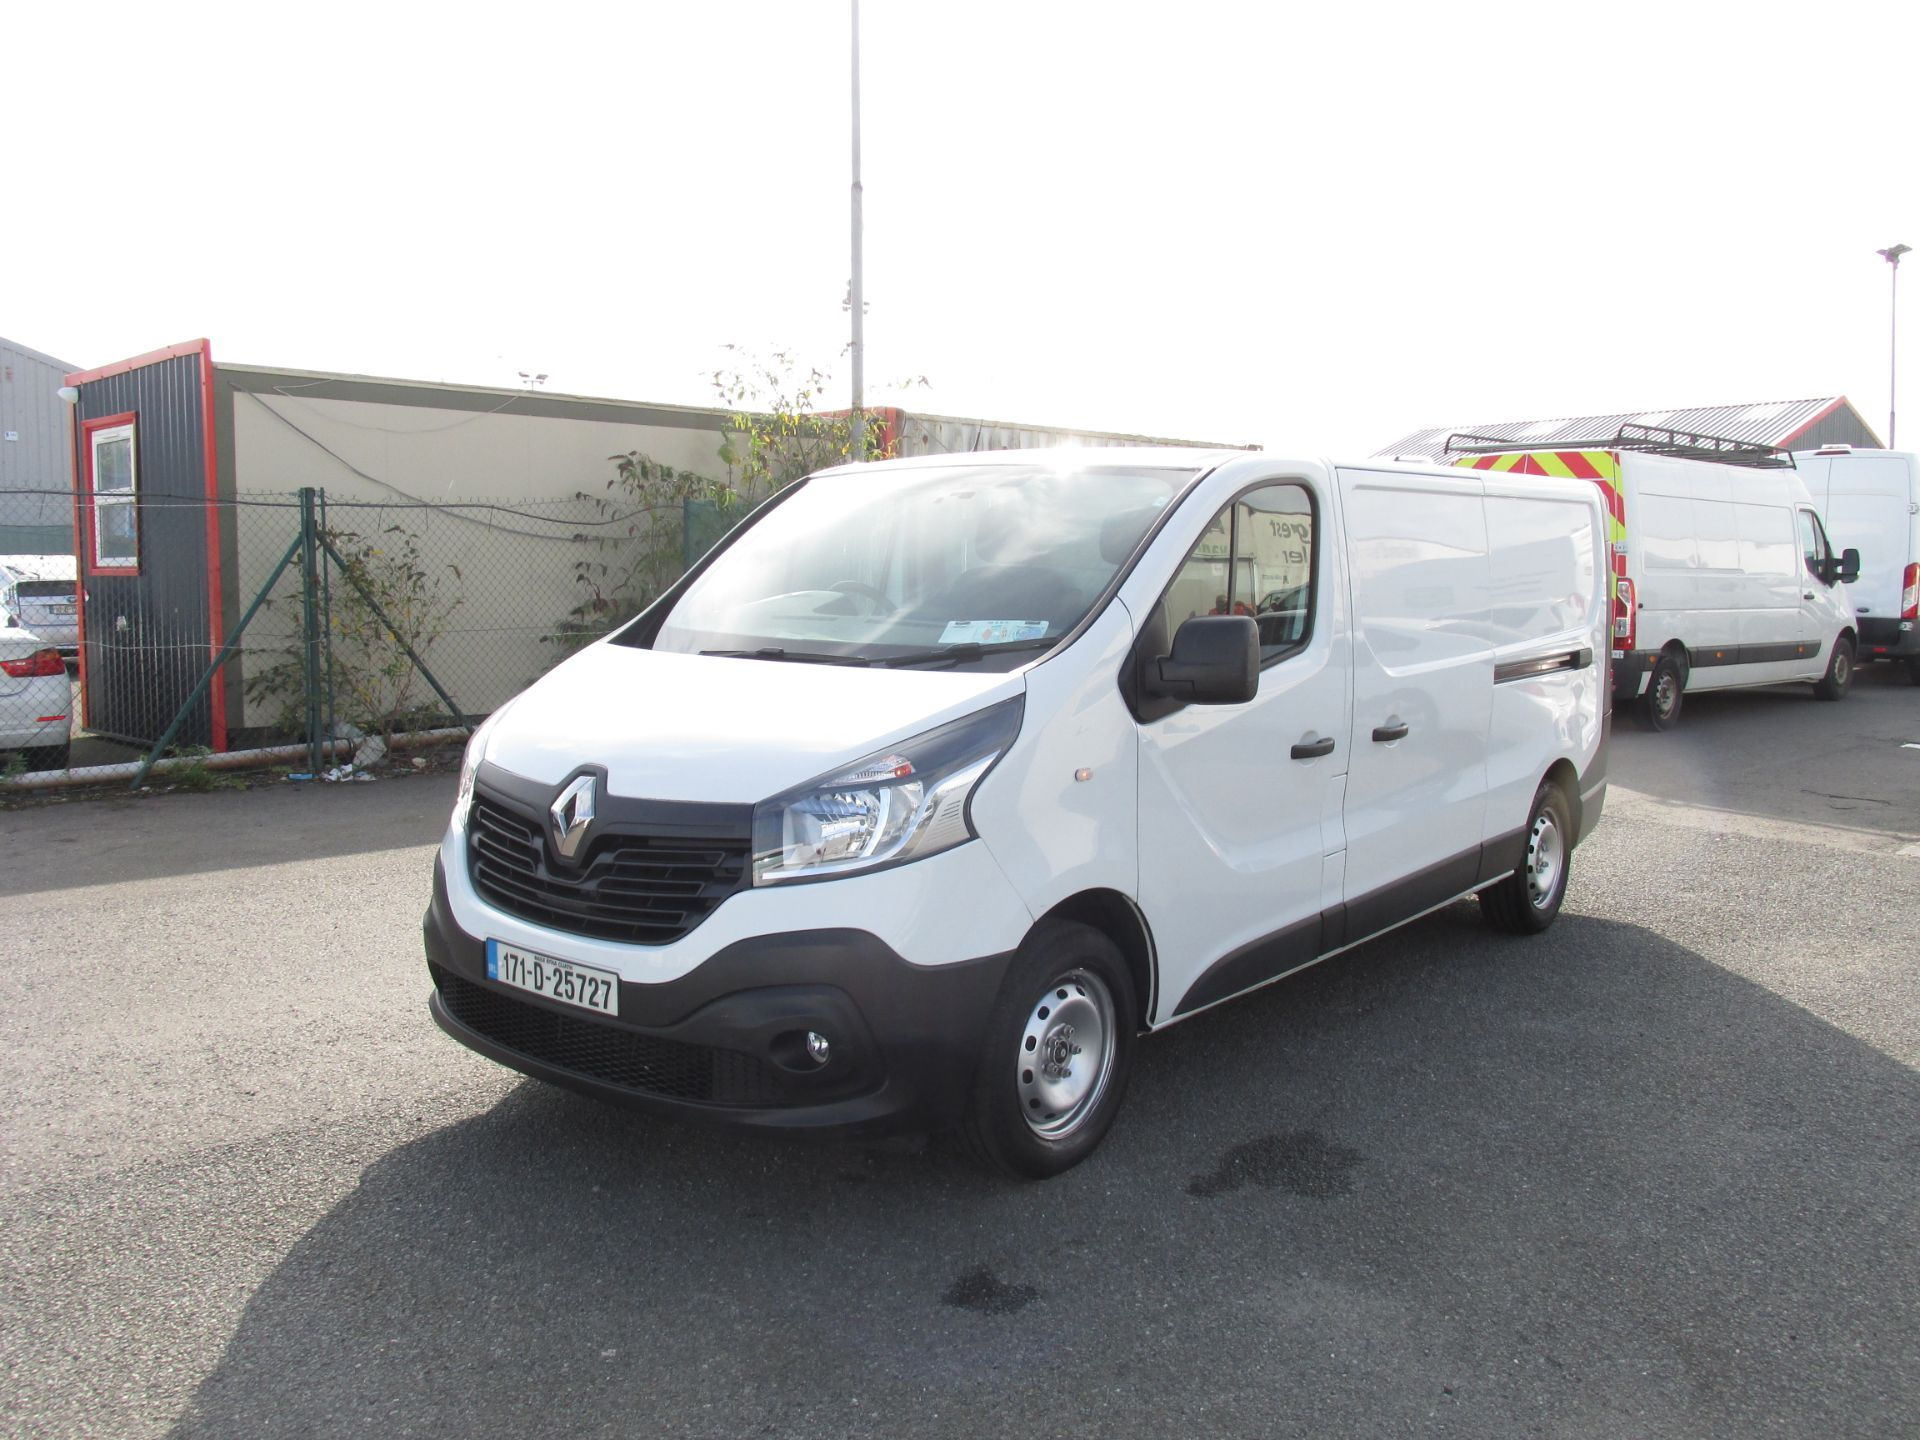 2017 Renault Trafic LL29 DCI 120 Business 3DR (171D25727) Image 3